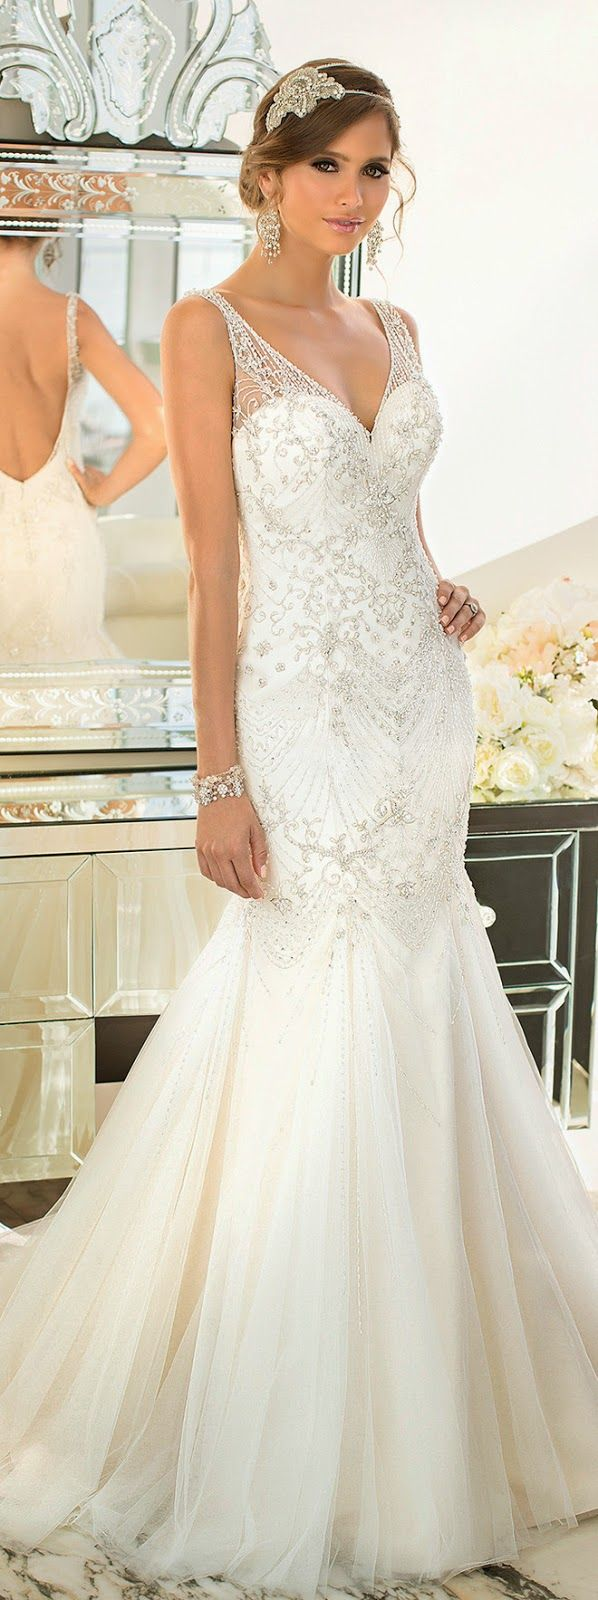 best here comes the bride images on pinterest gown wedding